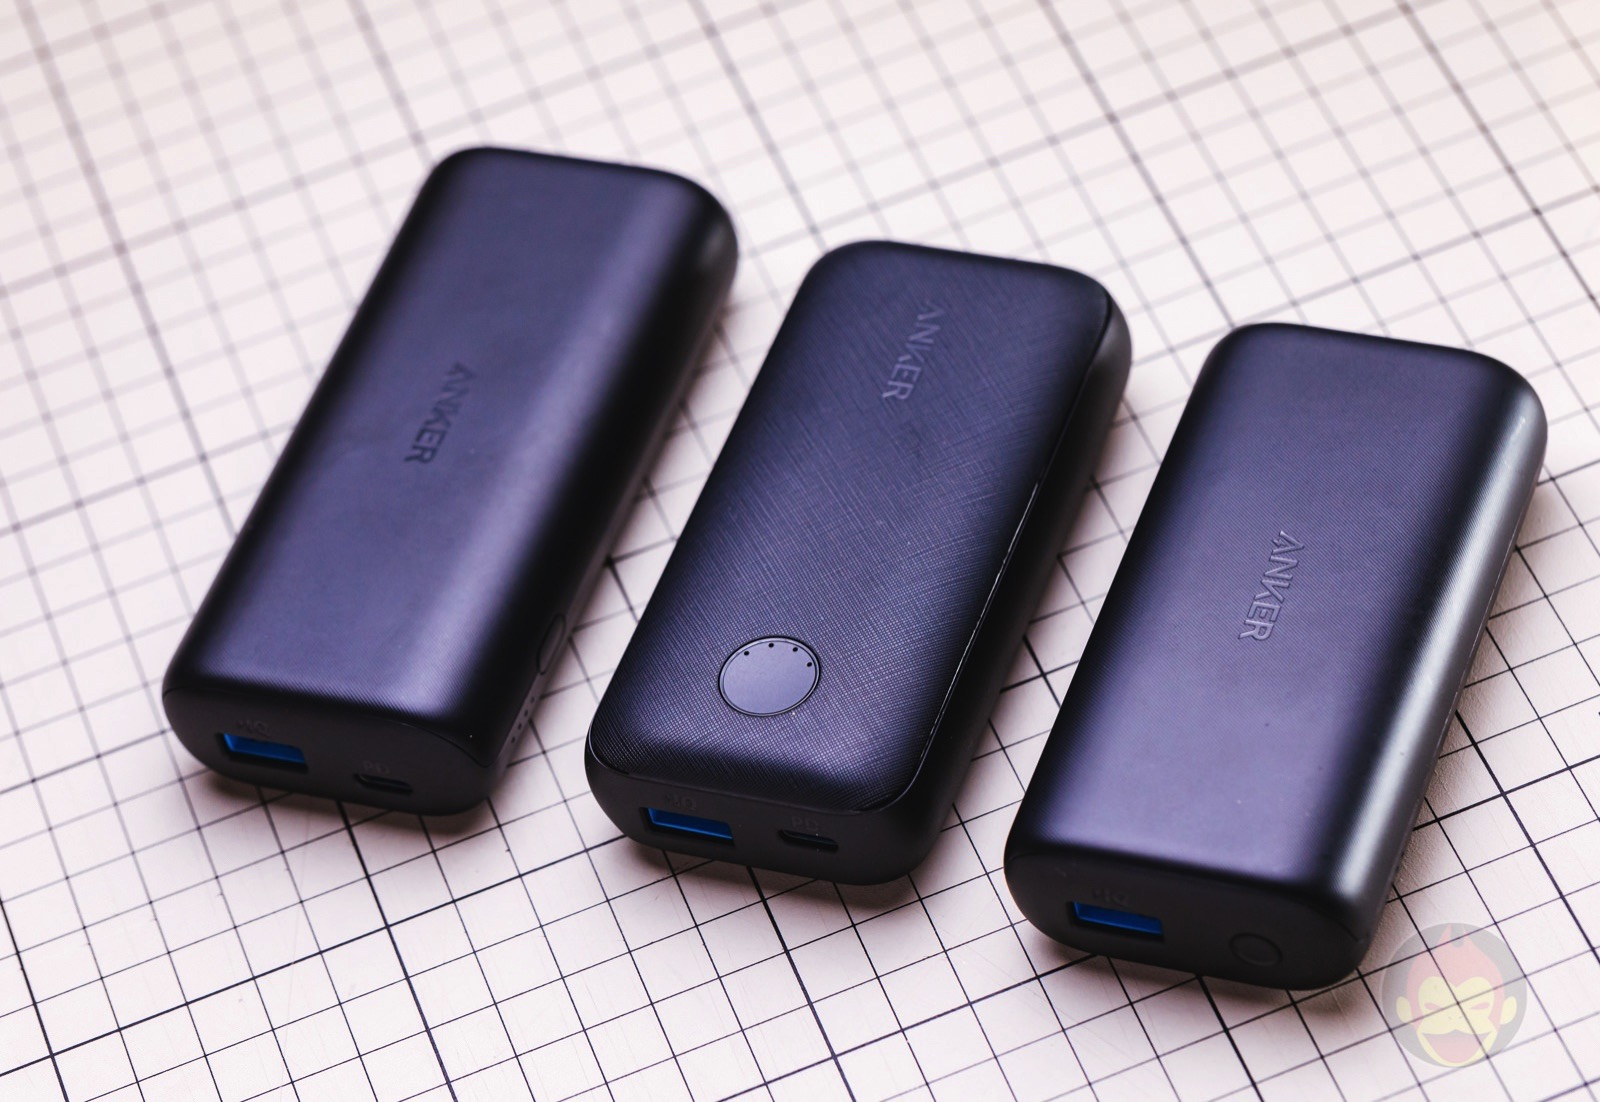 Anker-PowerCore-10000-PD-Redux-Review-17.jpg